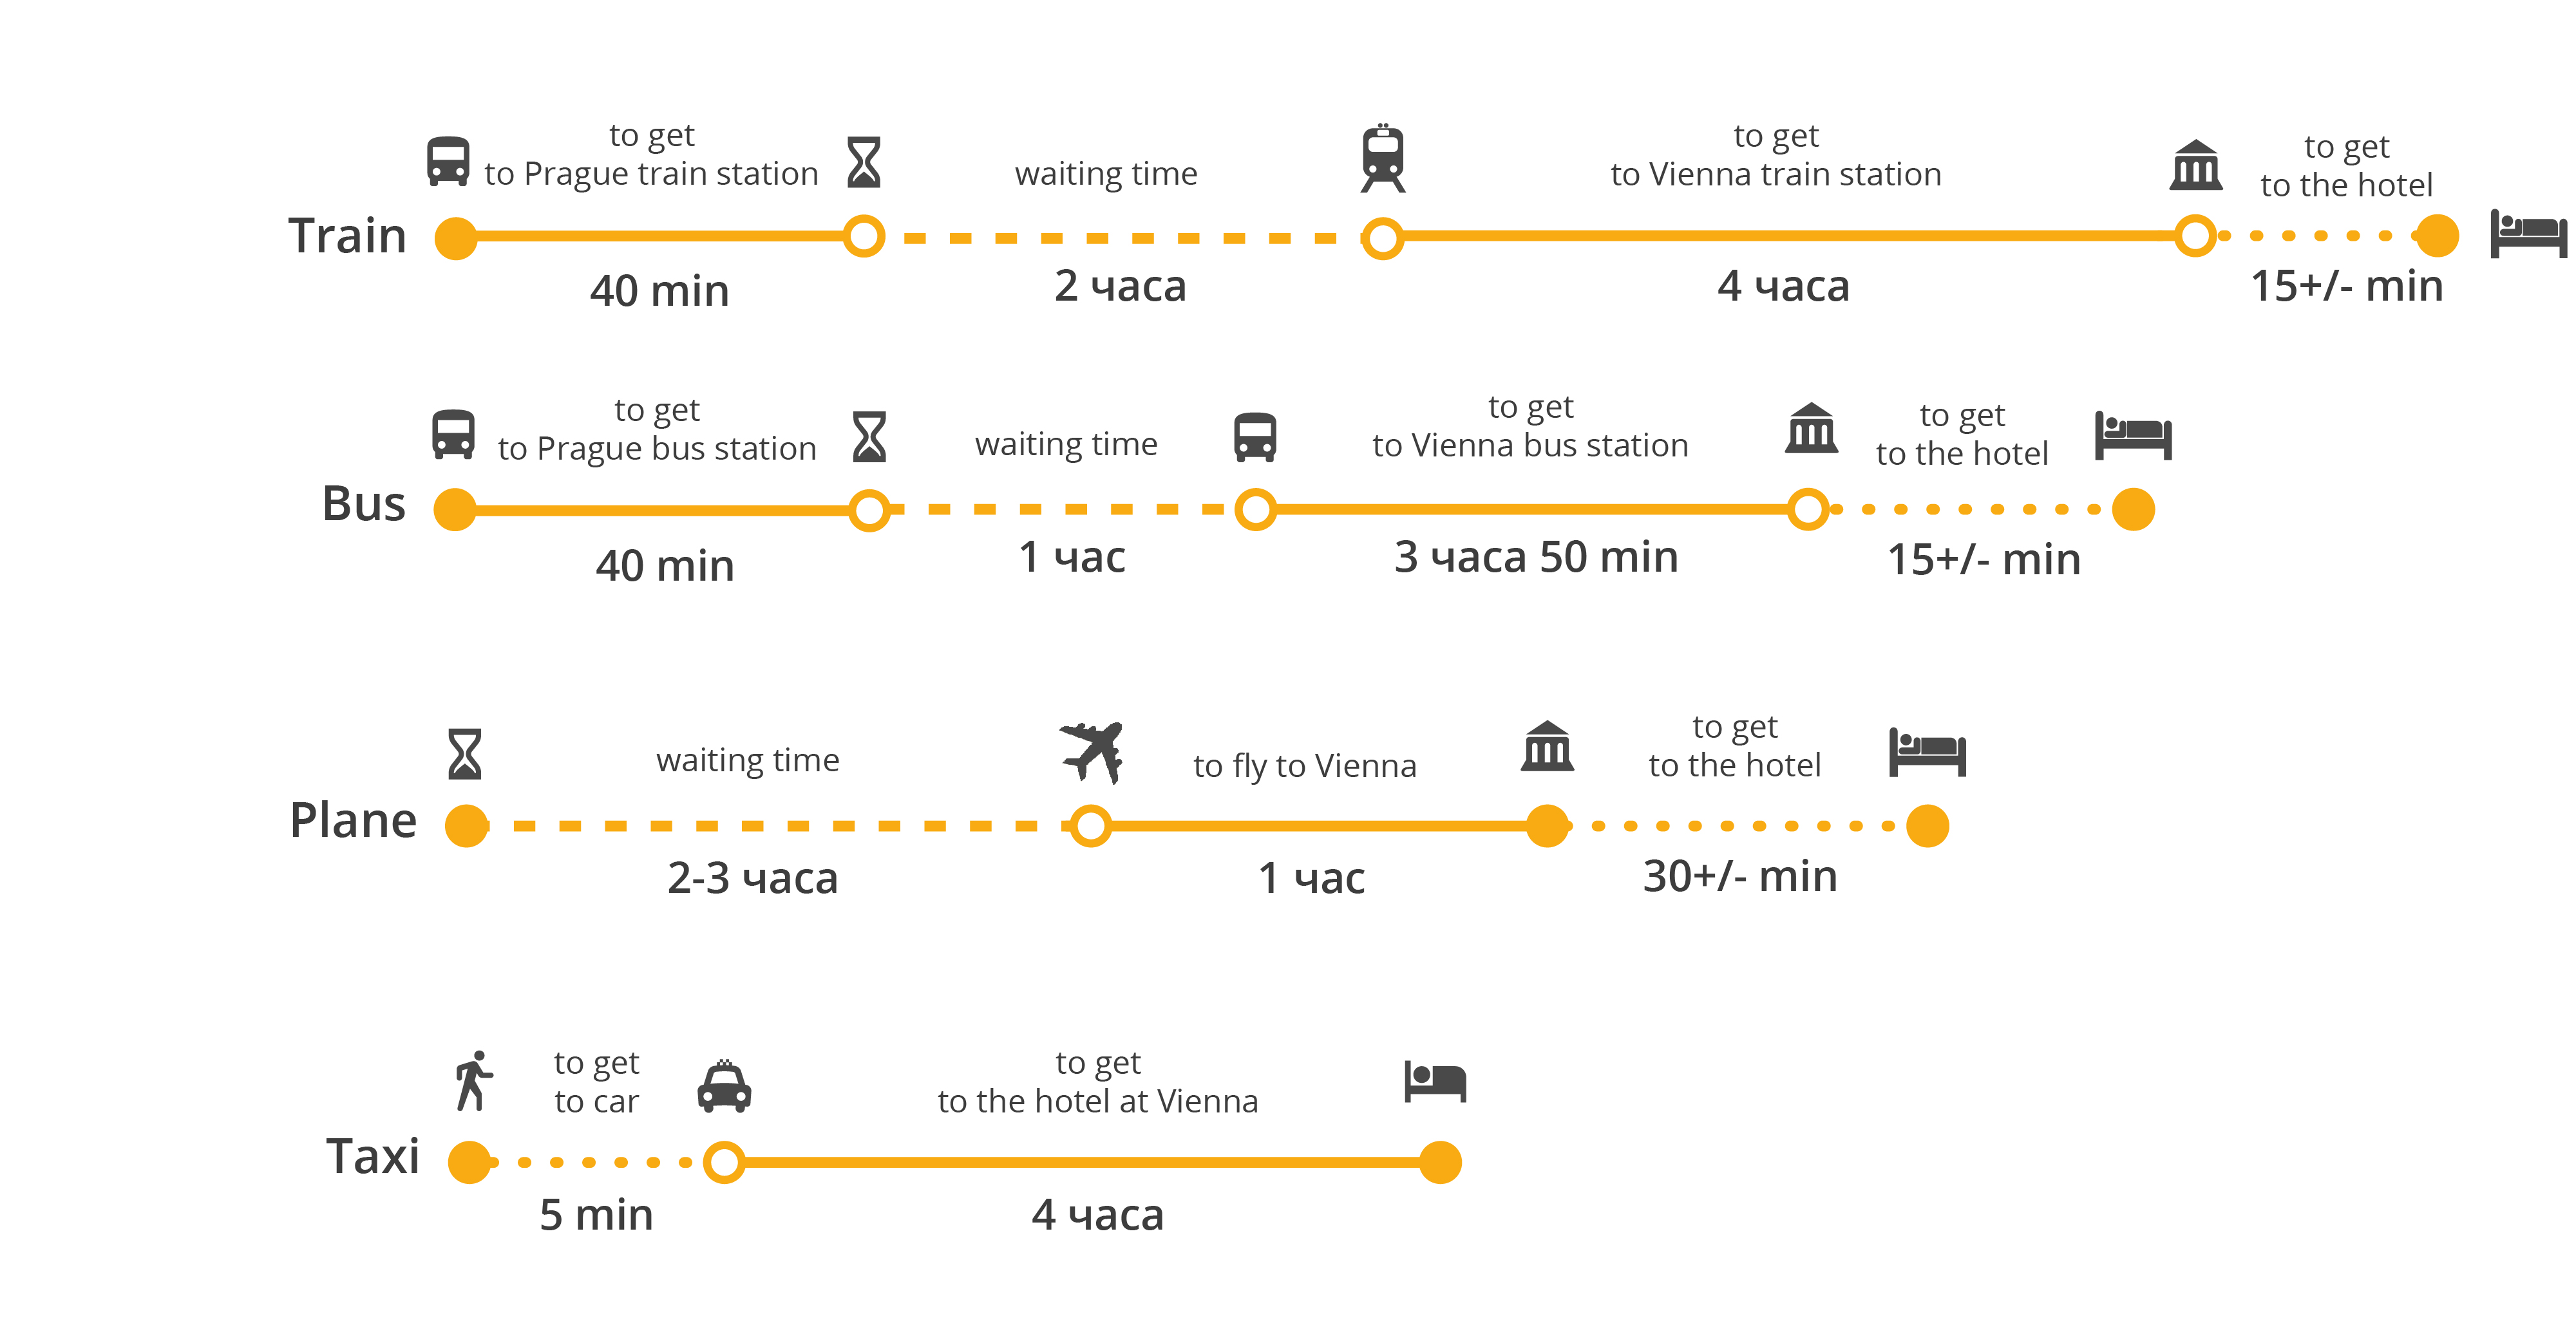 How to get from Prague airport to Vienna